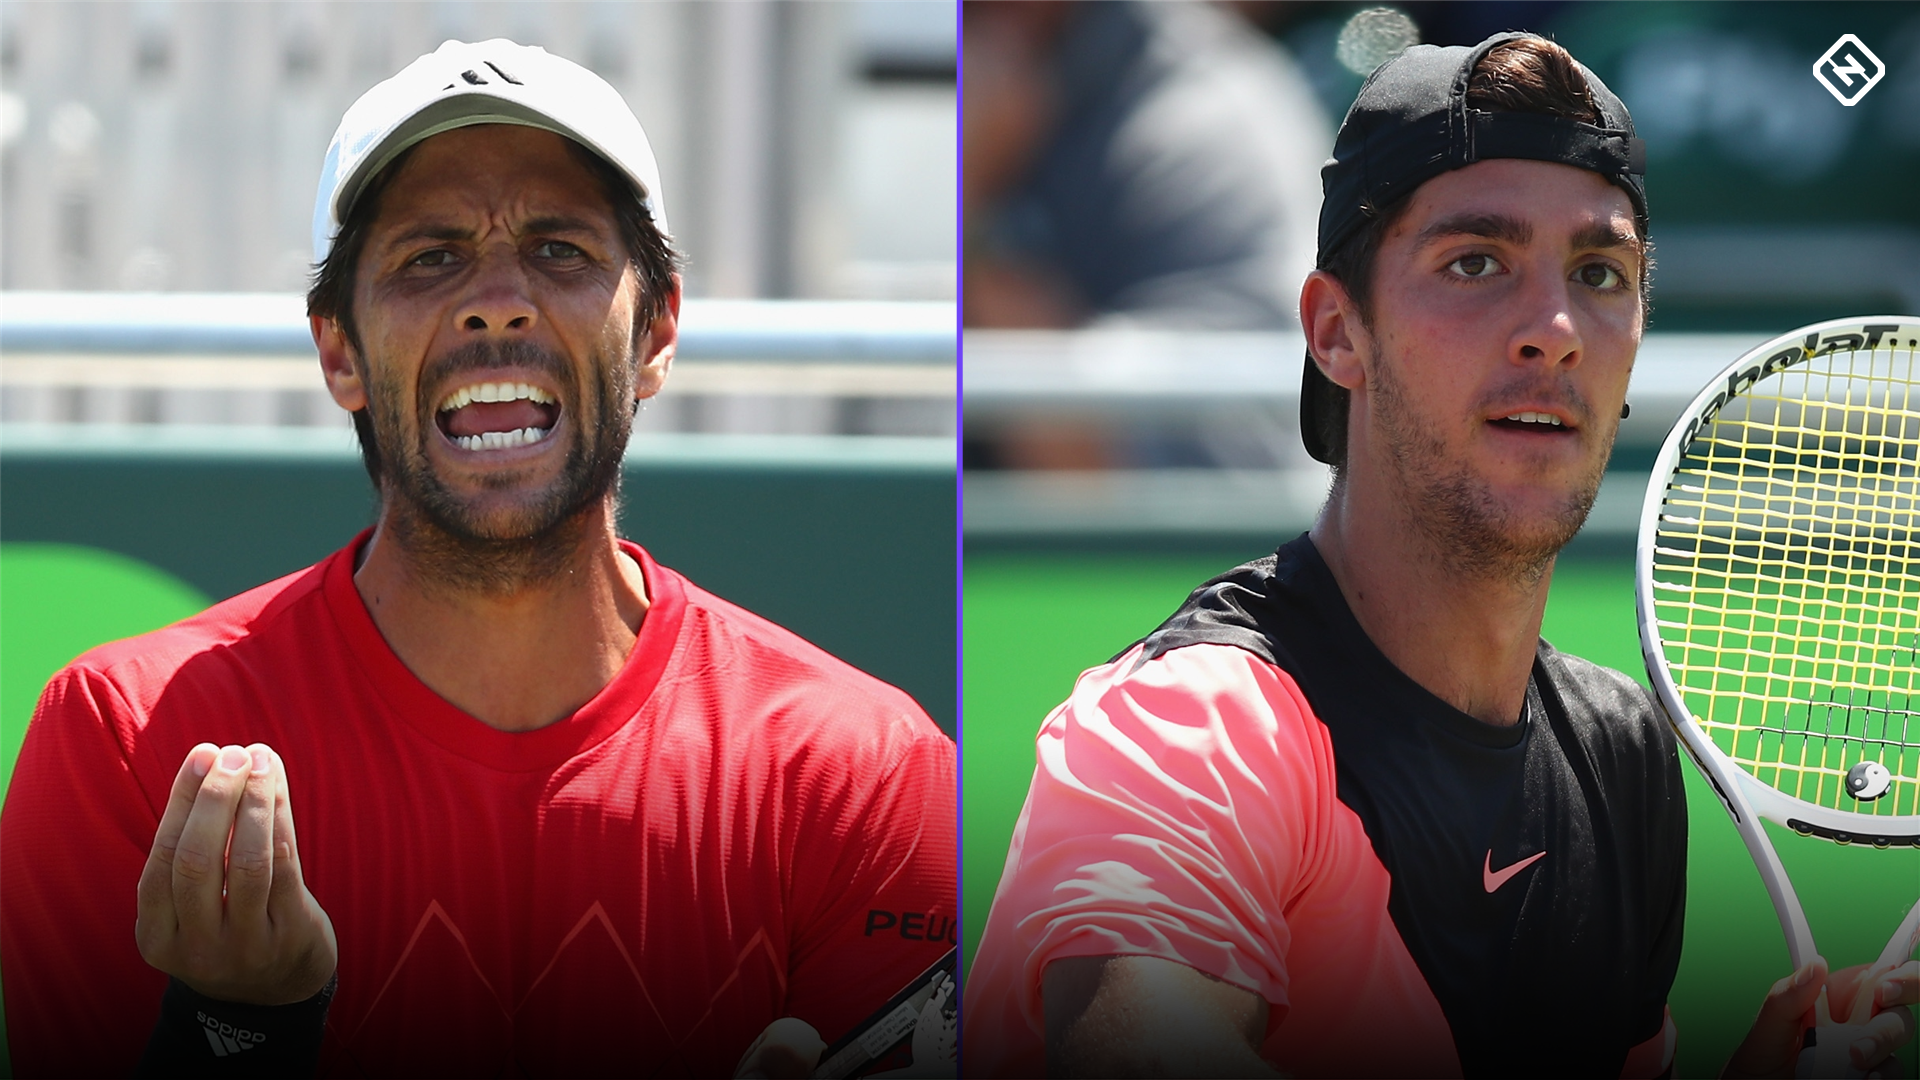 Kyrgios gets into Twitter spat with Verdasco